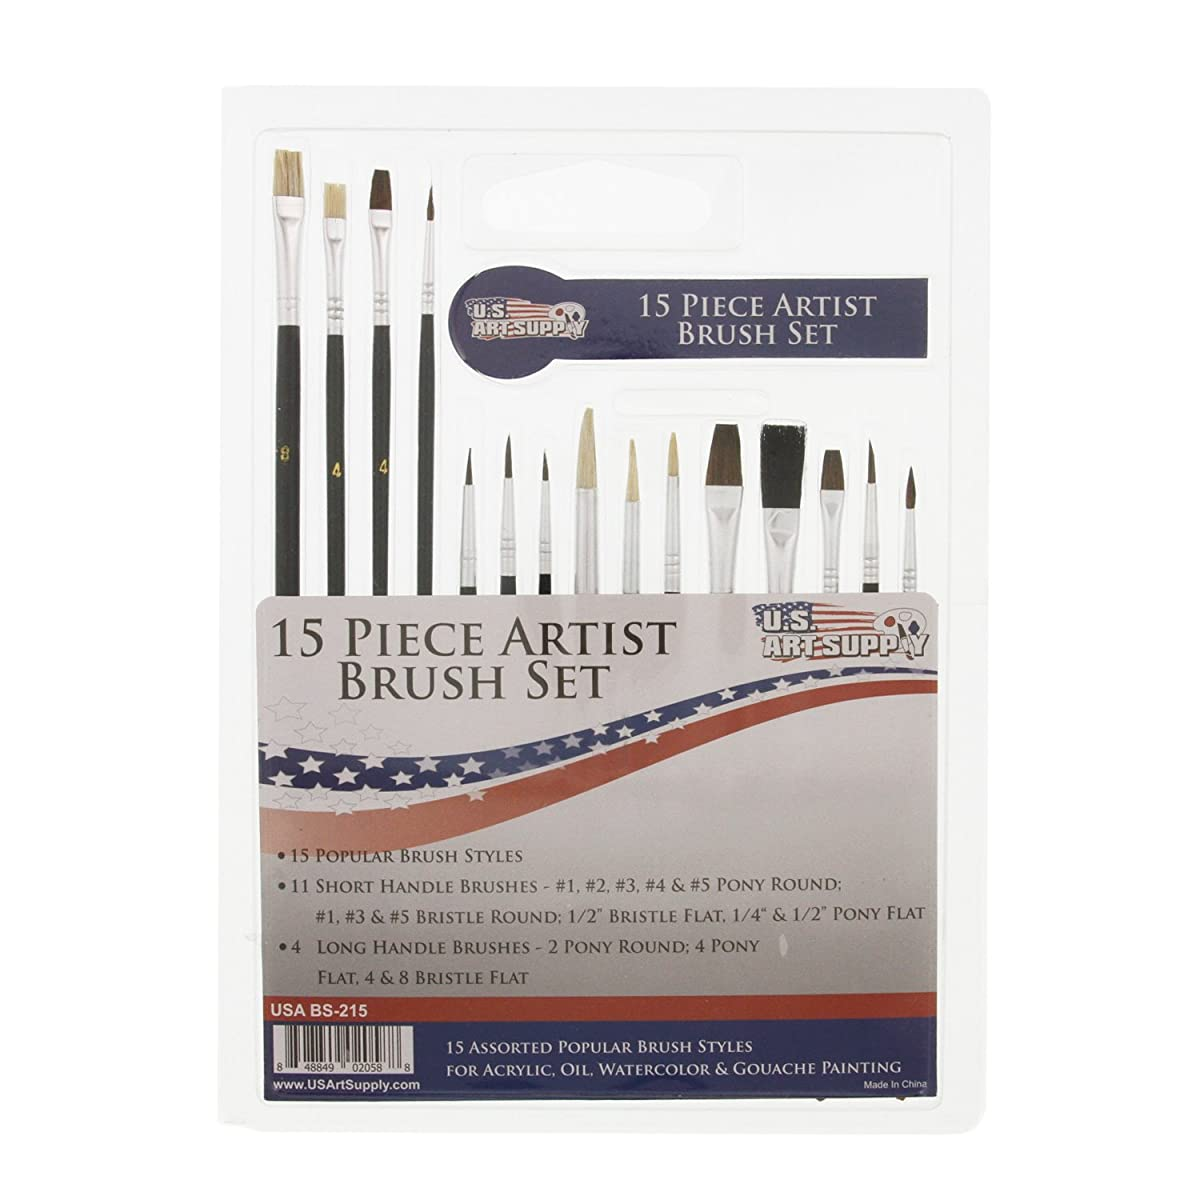 US ART SUPPLY 121-Piece Custom Artist Painting Kit with Coronado Sonoma Easel, 24-Tubes Acrylic Colors, 24-Tubes Oil Painting Colors, 24-tubes Watercolor Painting Colors